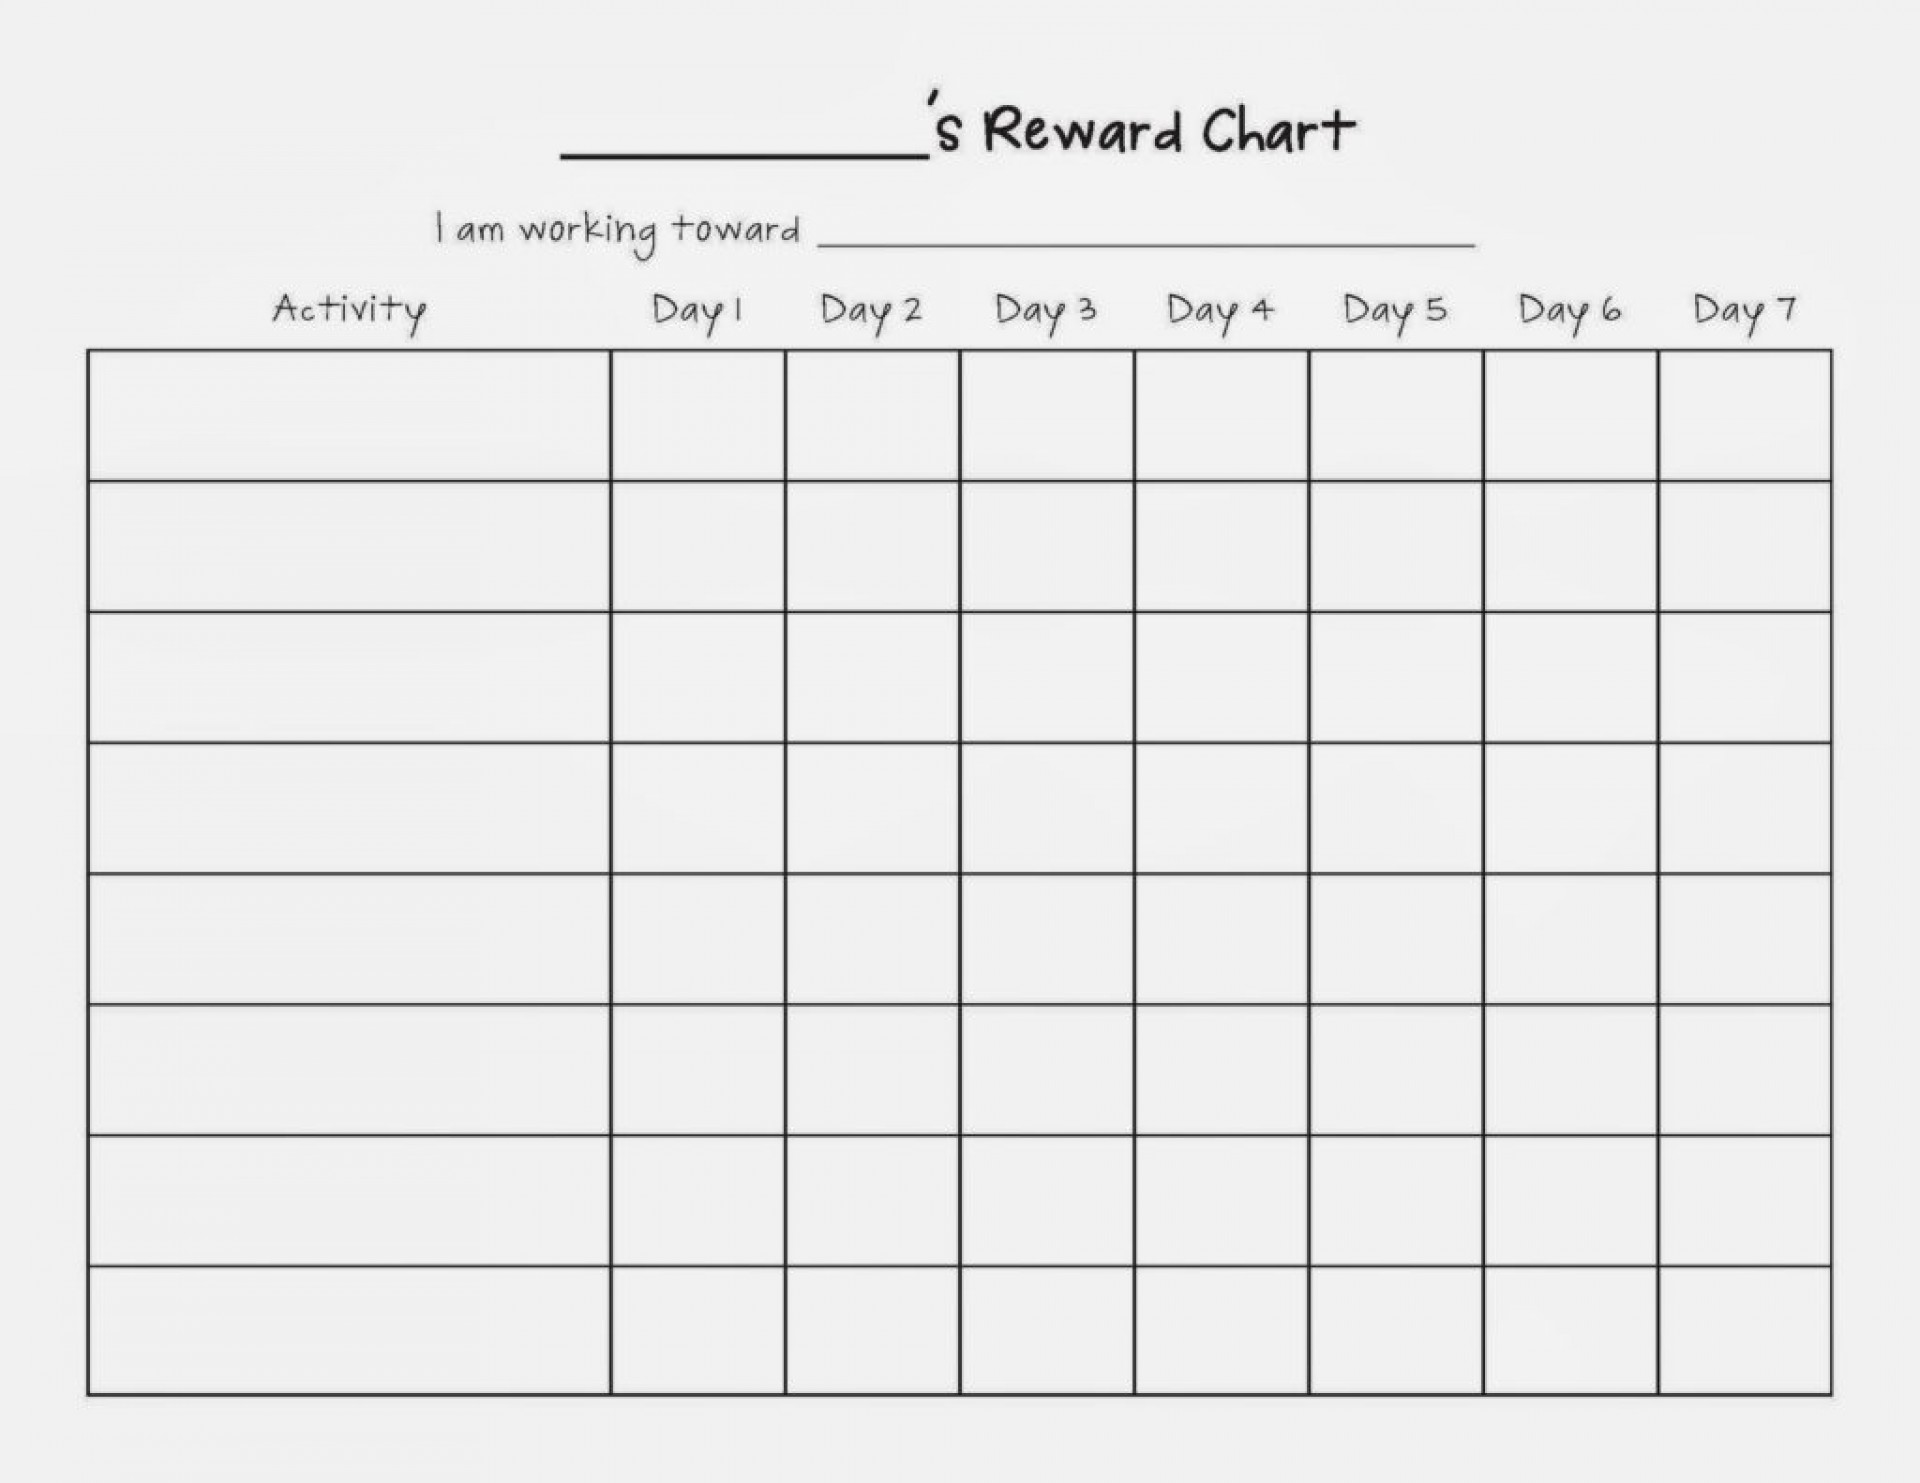 016 Essay Example Uncategorized Free Weekly Reward Chart Blank Template For Children 1024x791 Reword Unique My 1920